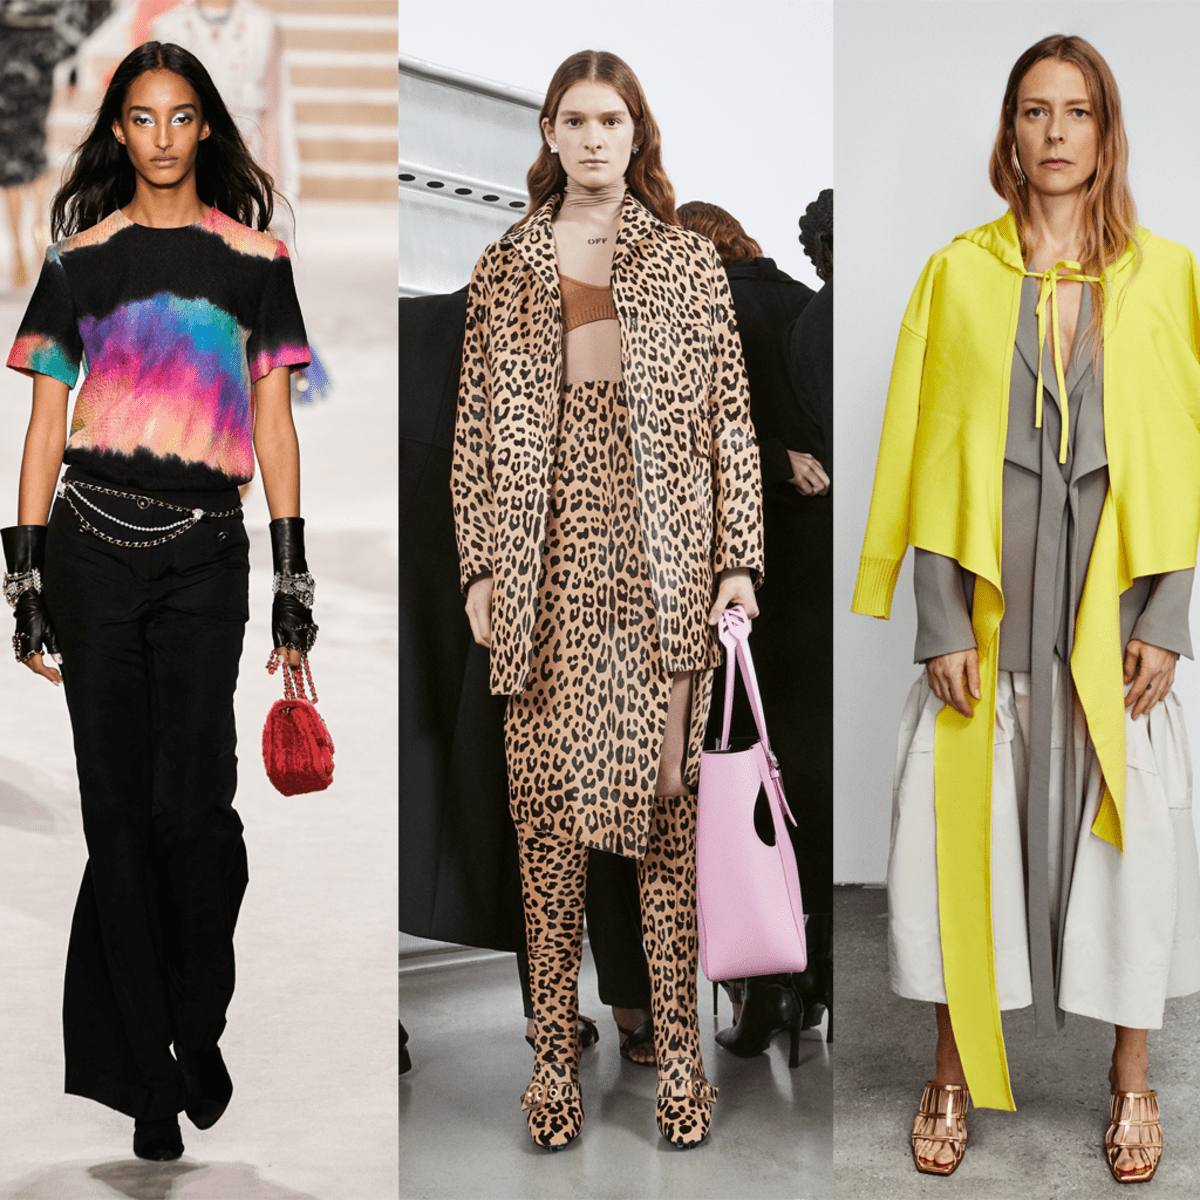 20 Top Trends From the Pre Fall 20 Collections   Fashionista